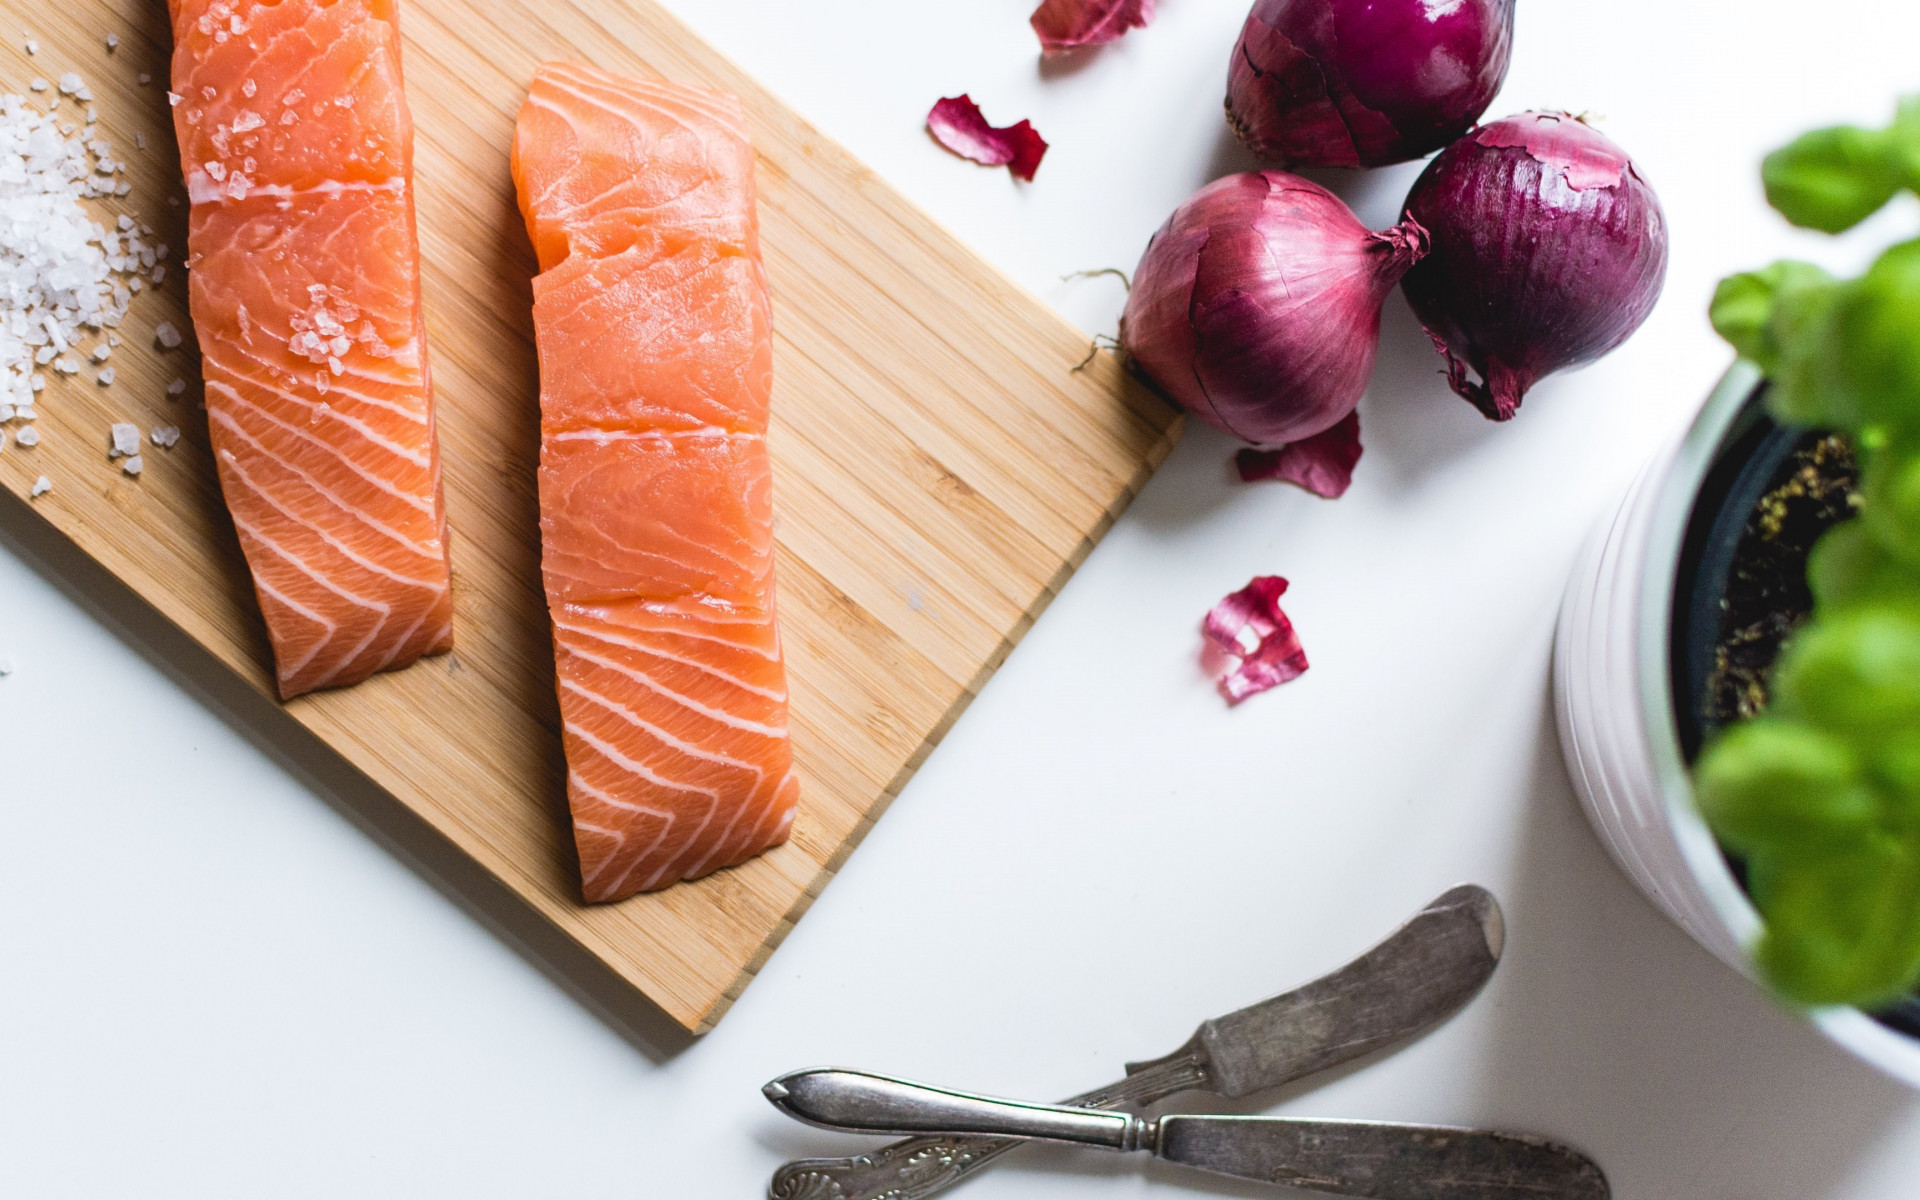 Salmon fillets wallpaper 1920x1200